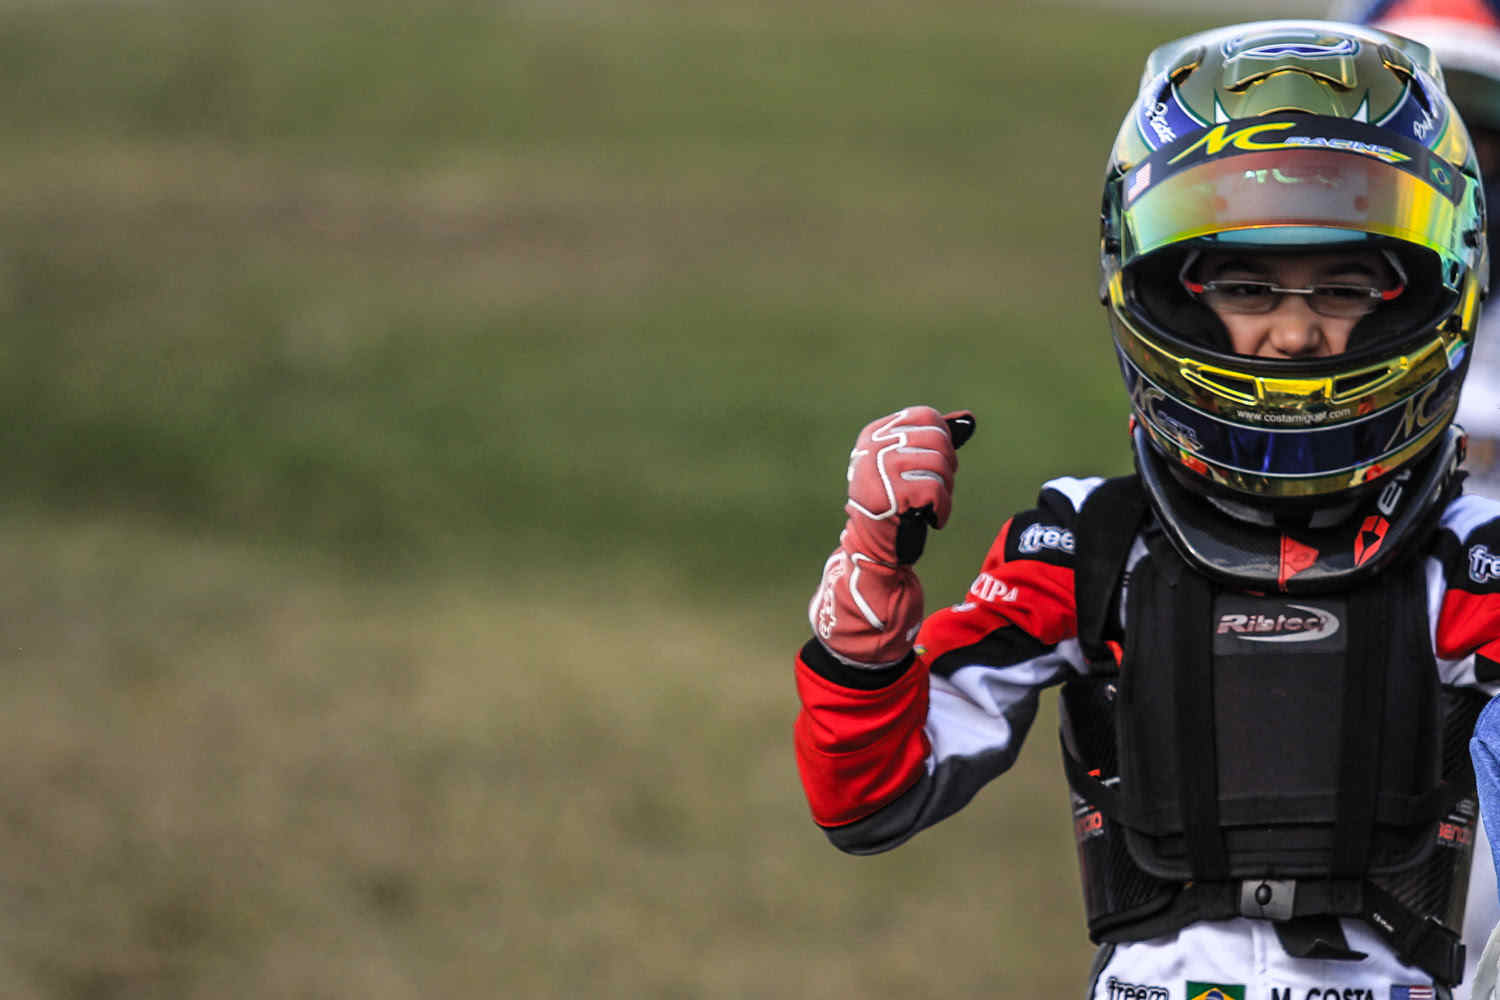 Justin Aresenau, drove one of the most exciting races of the weekend in Mini Max